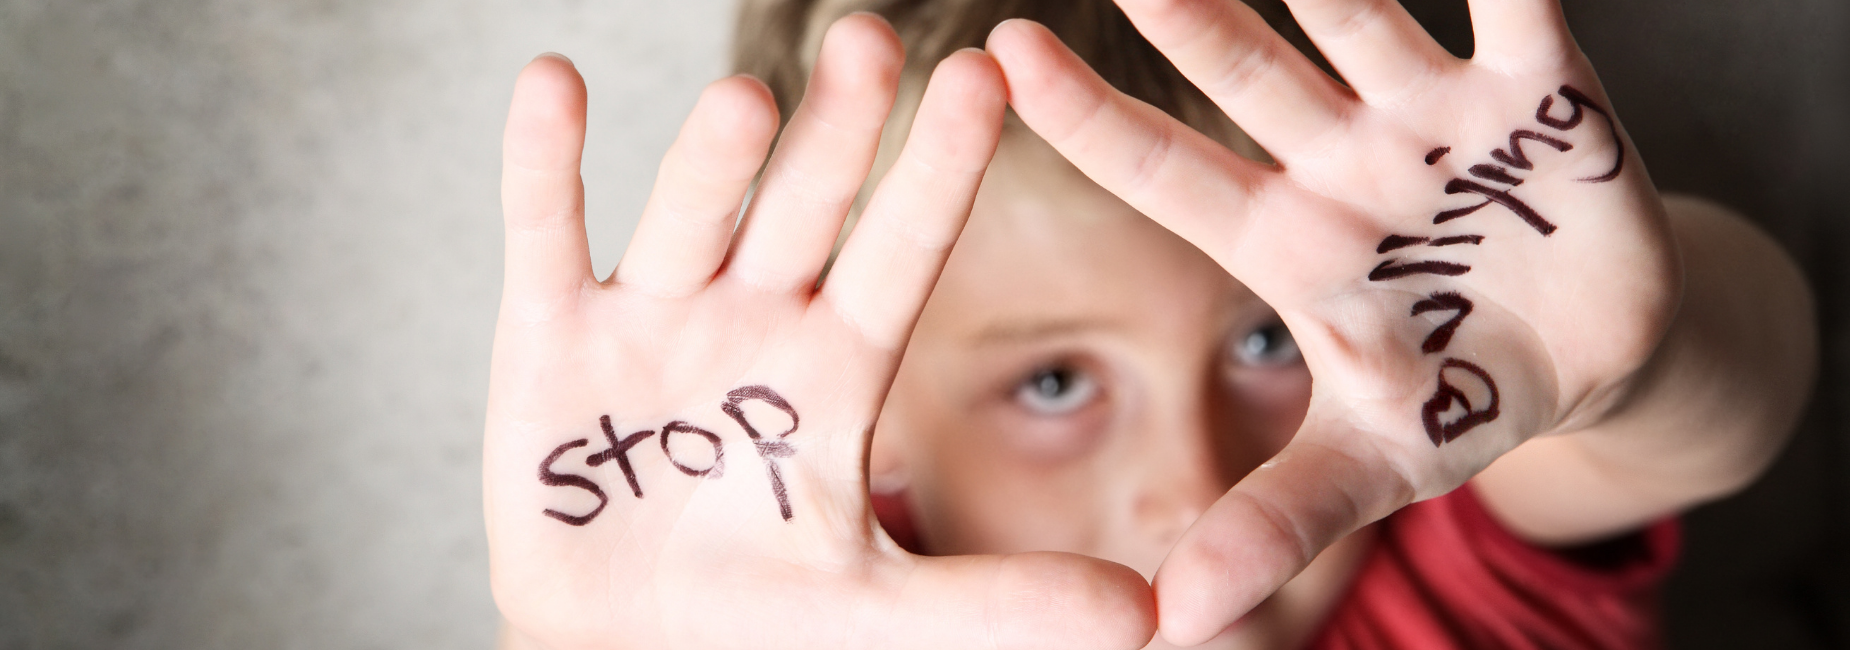 boy holding up hands with stop bullying written on his palms